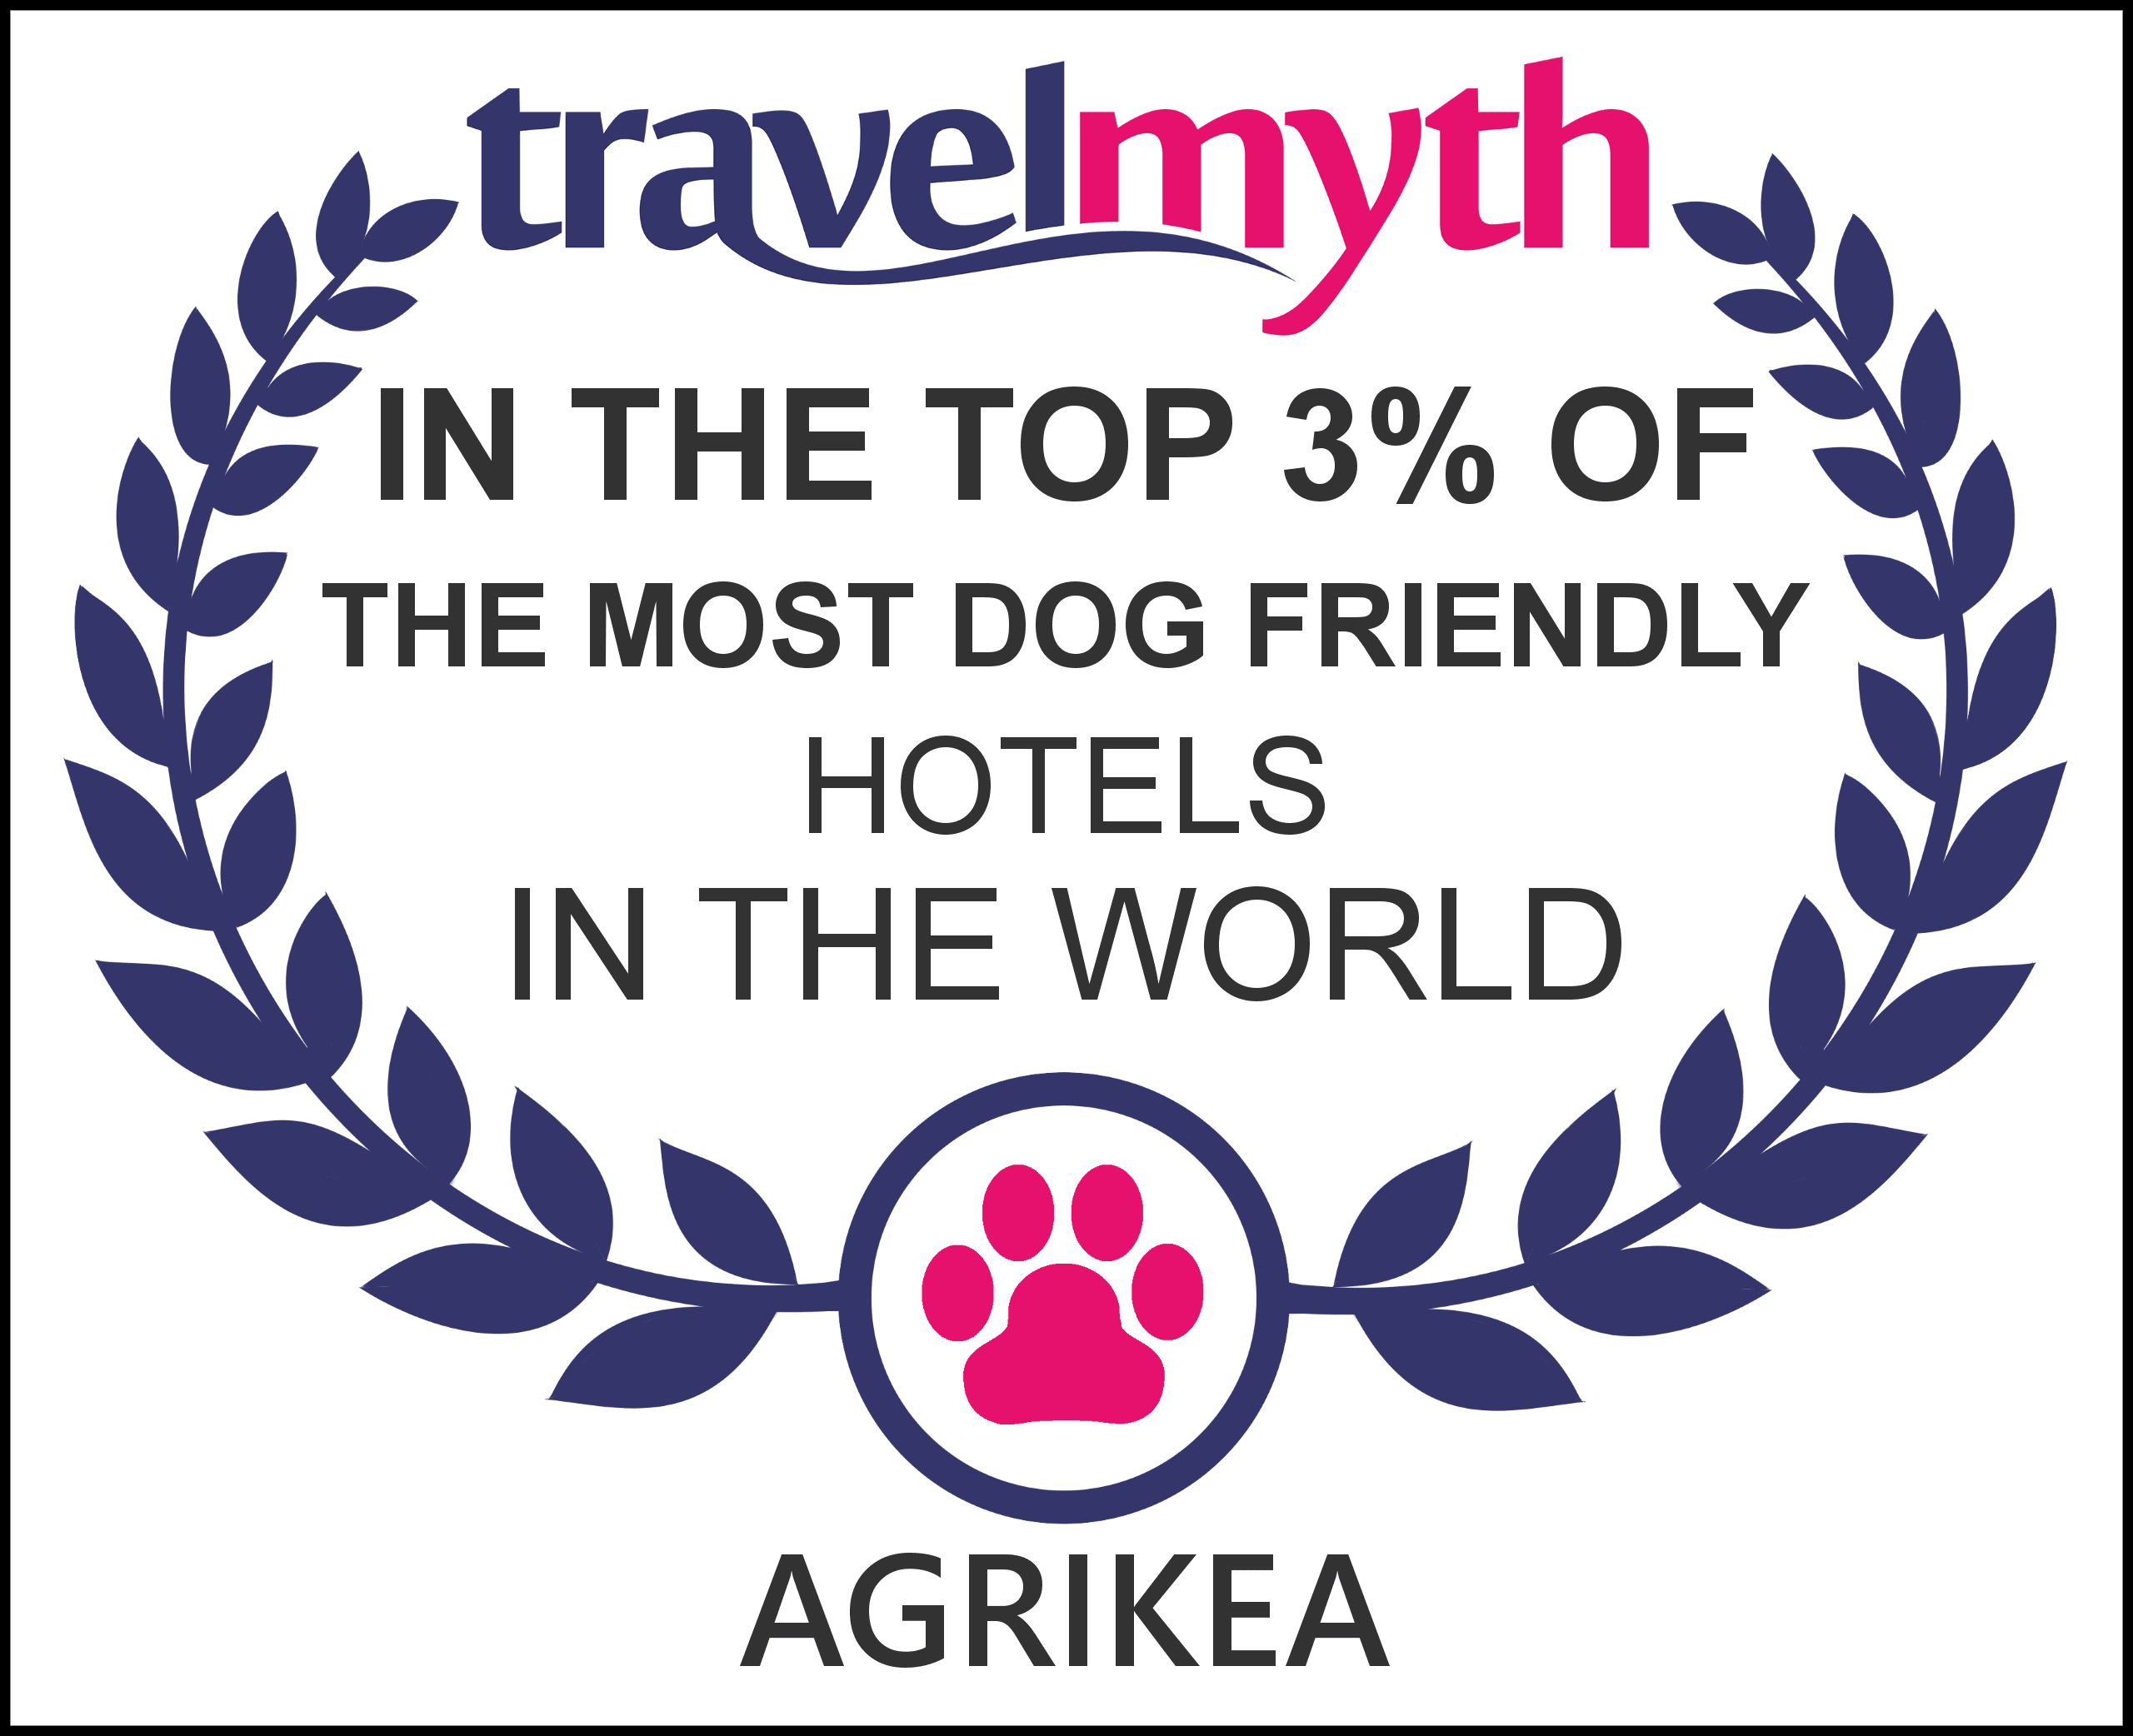 travelmyth_1377807_EkMM_r_in-the-world_dog_friendly_p3_y0_71ae_en_print.png